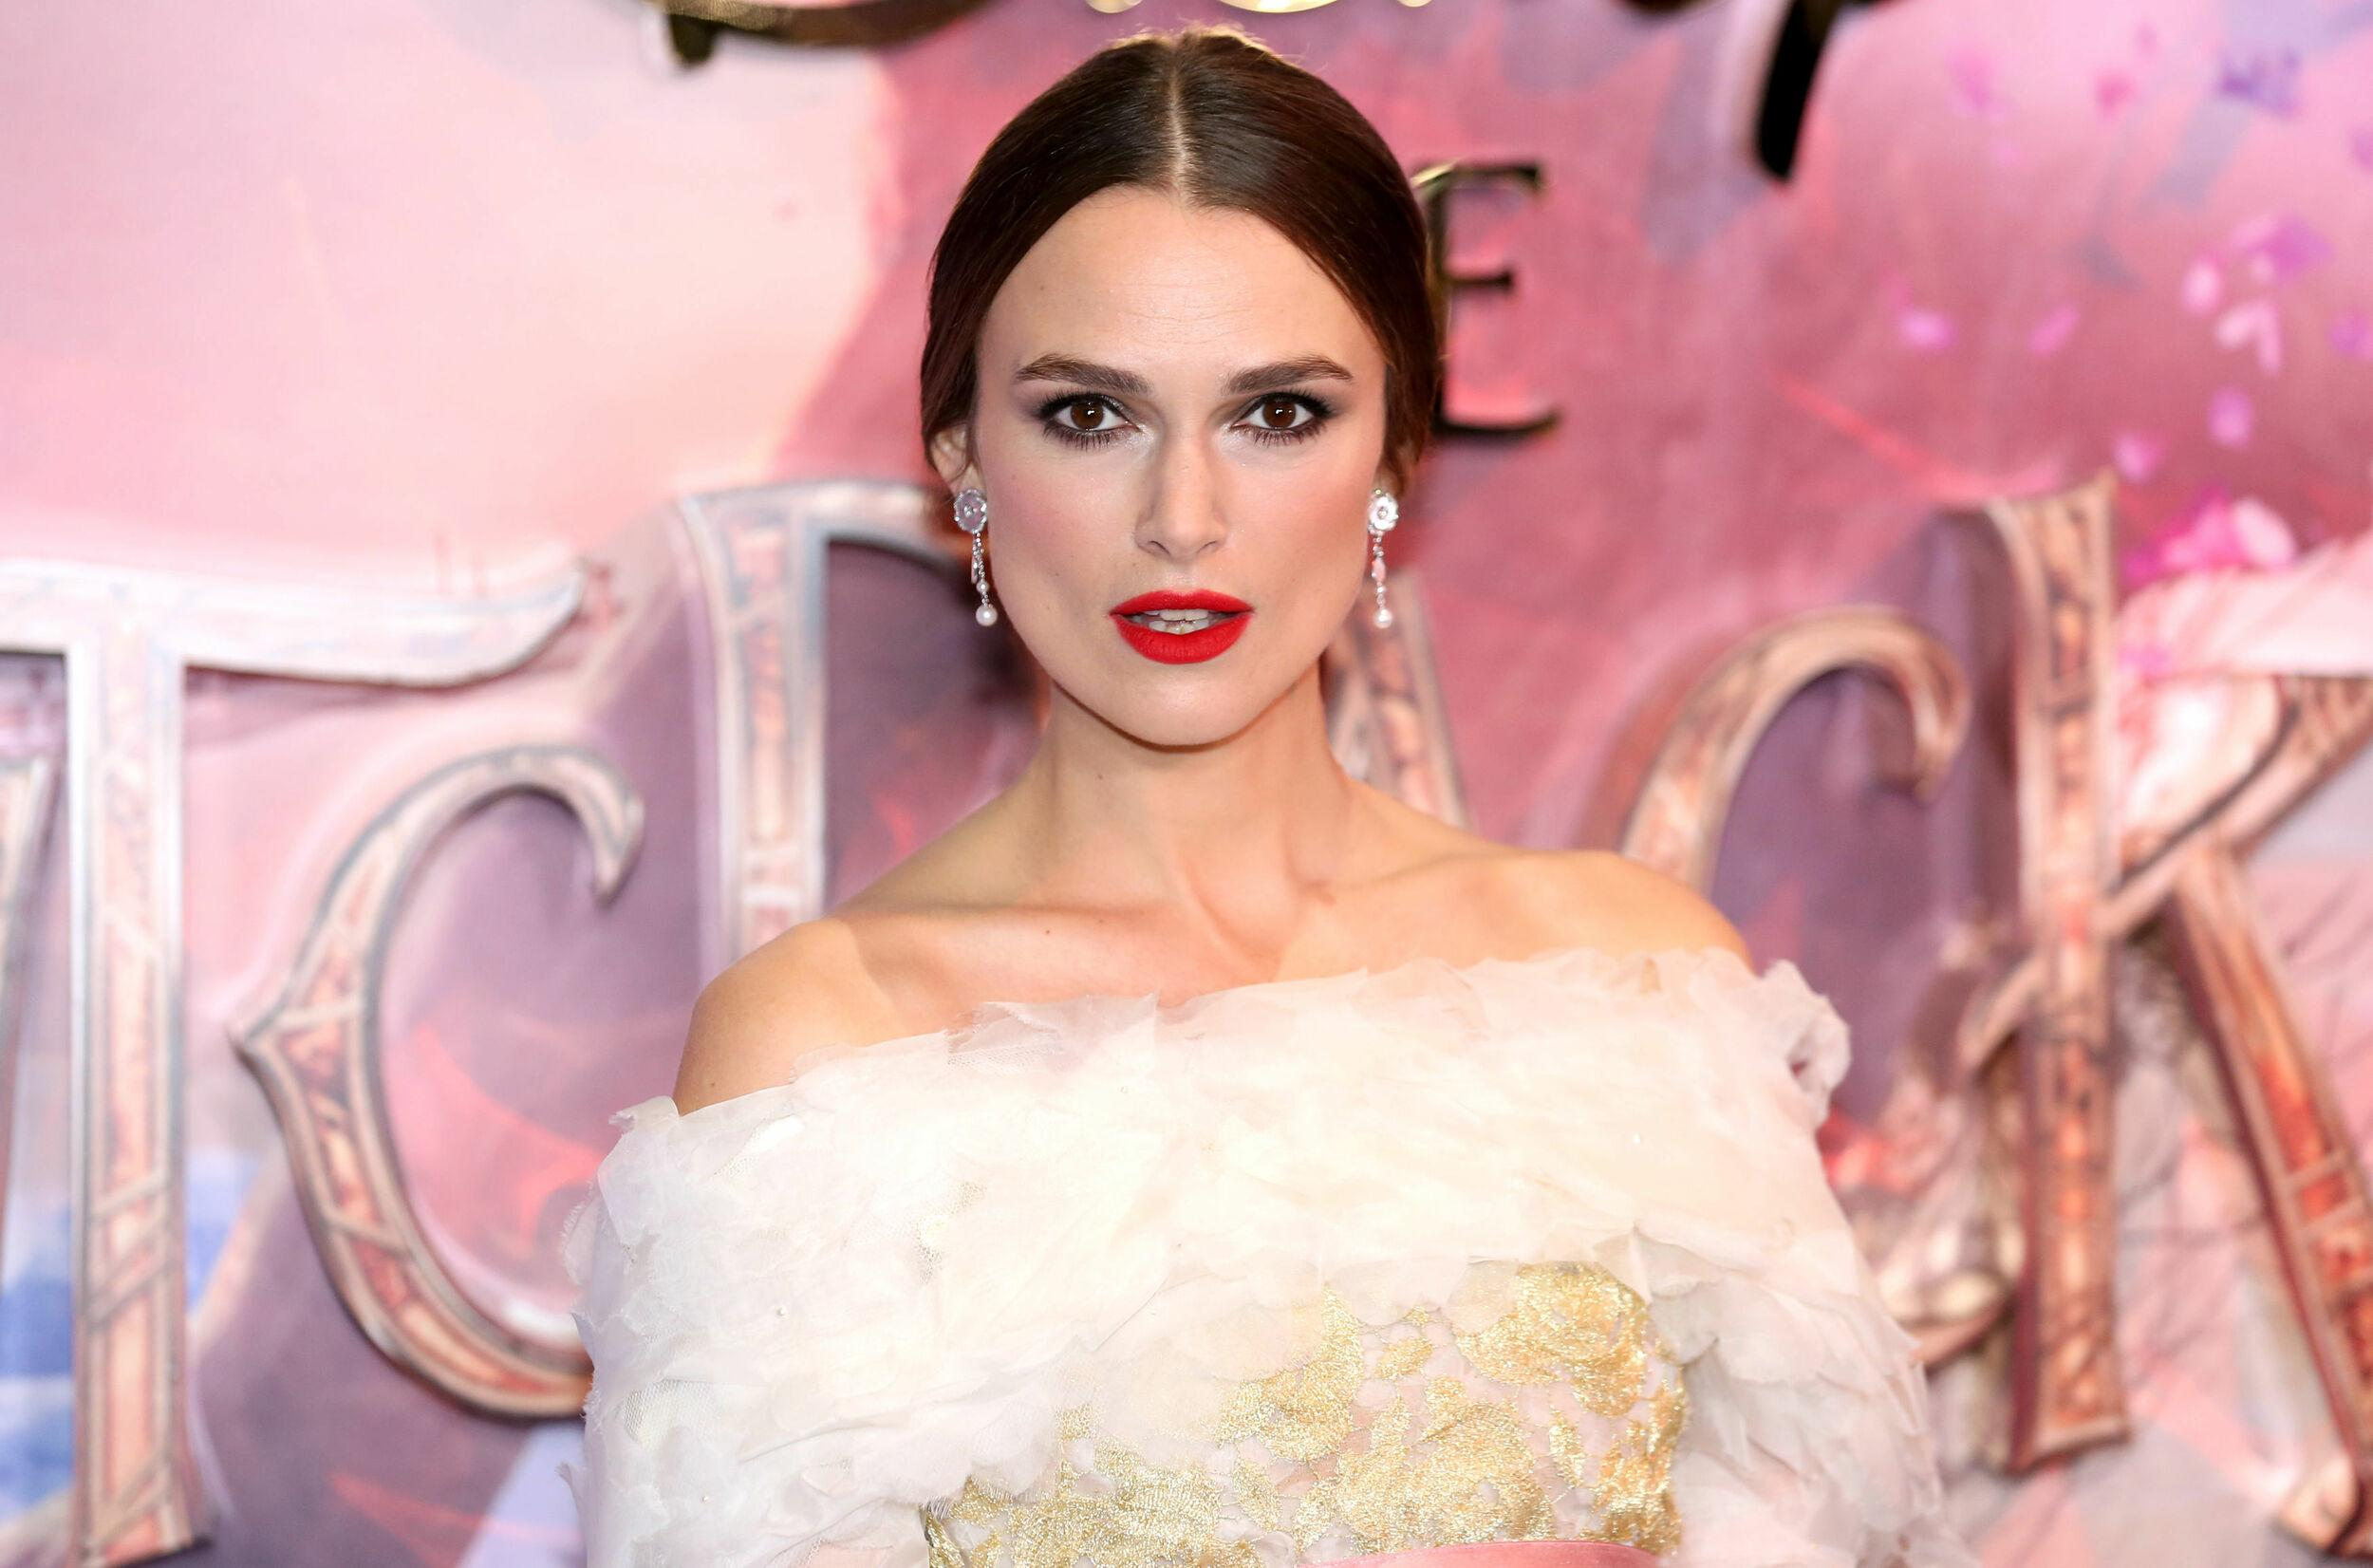 Keira Knightley attending the European Premiere of The Nutcracker and the Four Realms held at the Vue, Westfield London. (Photo by David Parry/PA Images via Getty Images)